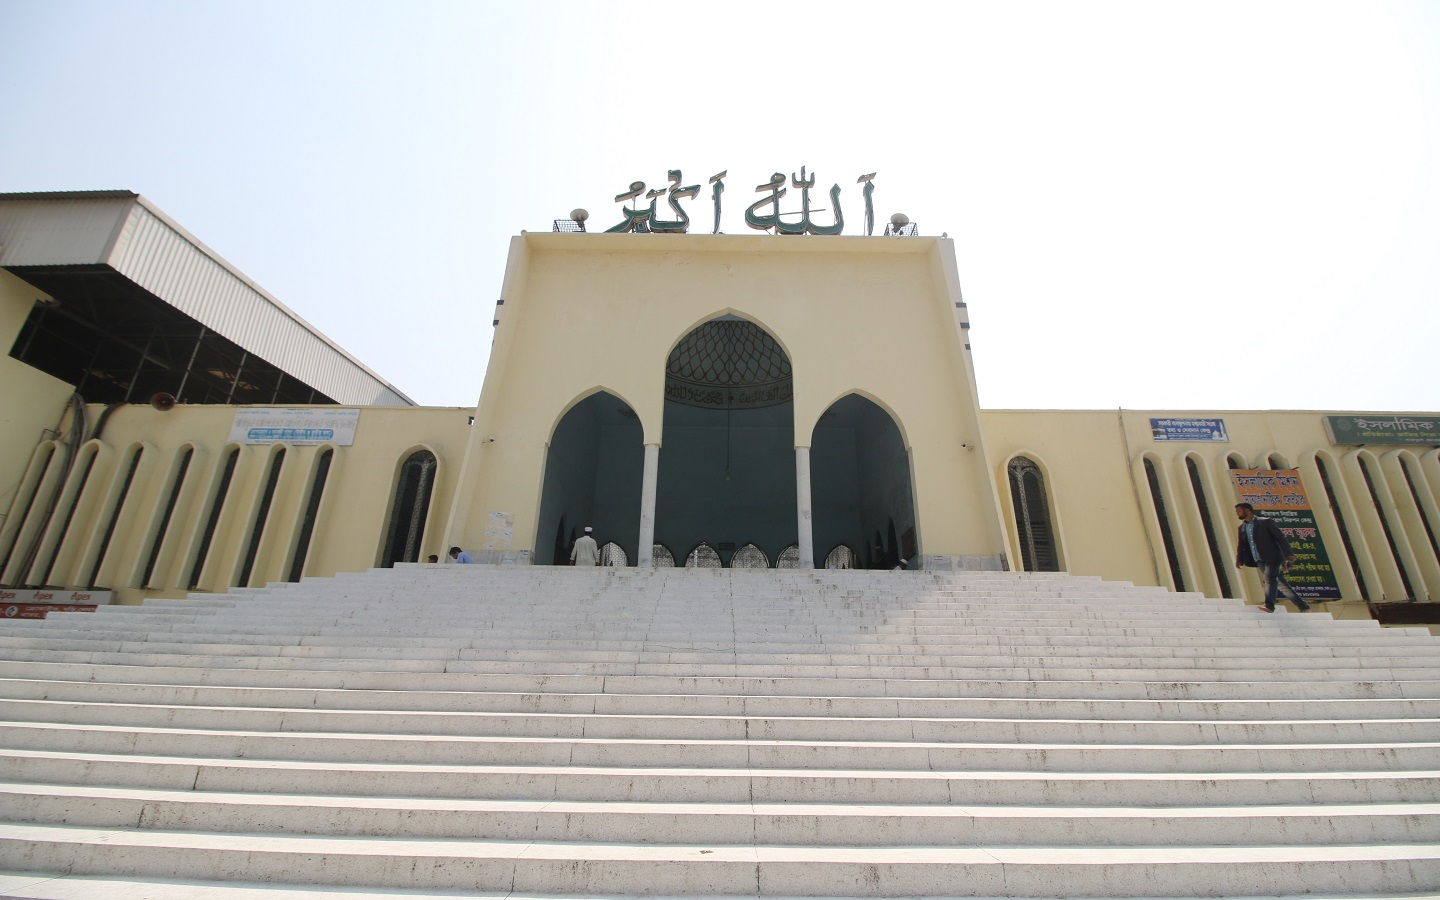 At any given hour, you will never find this mosque empty